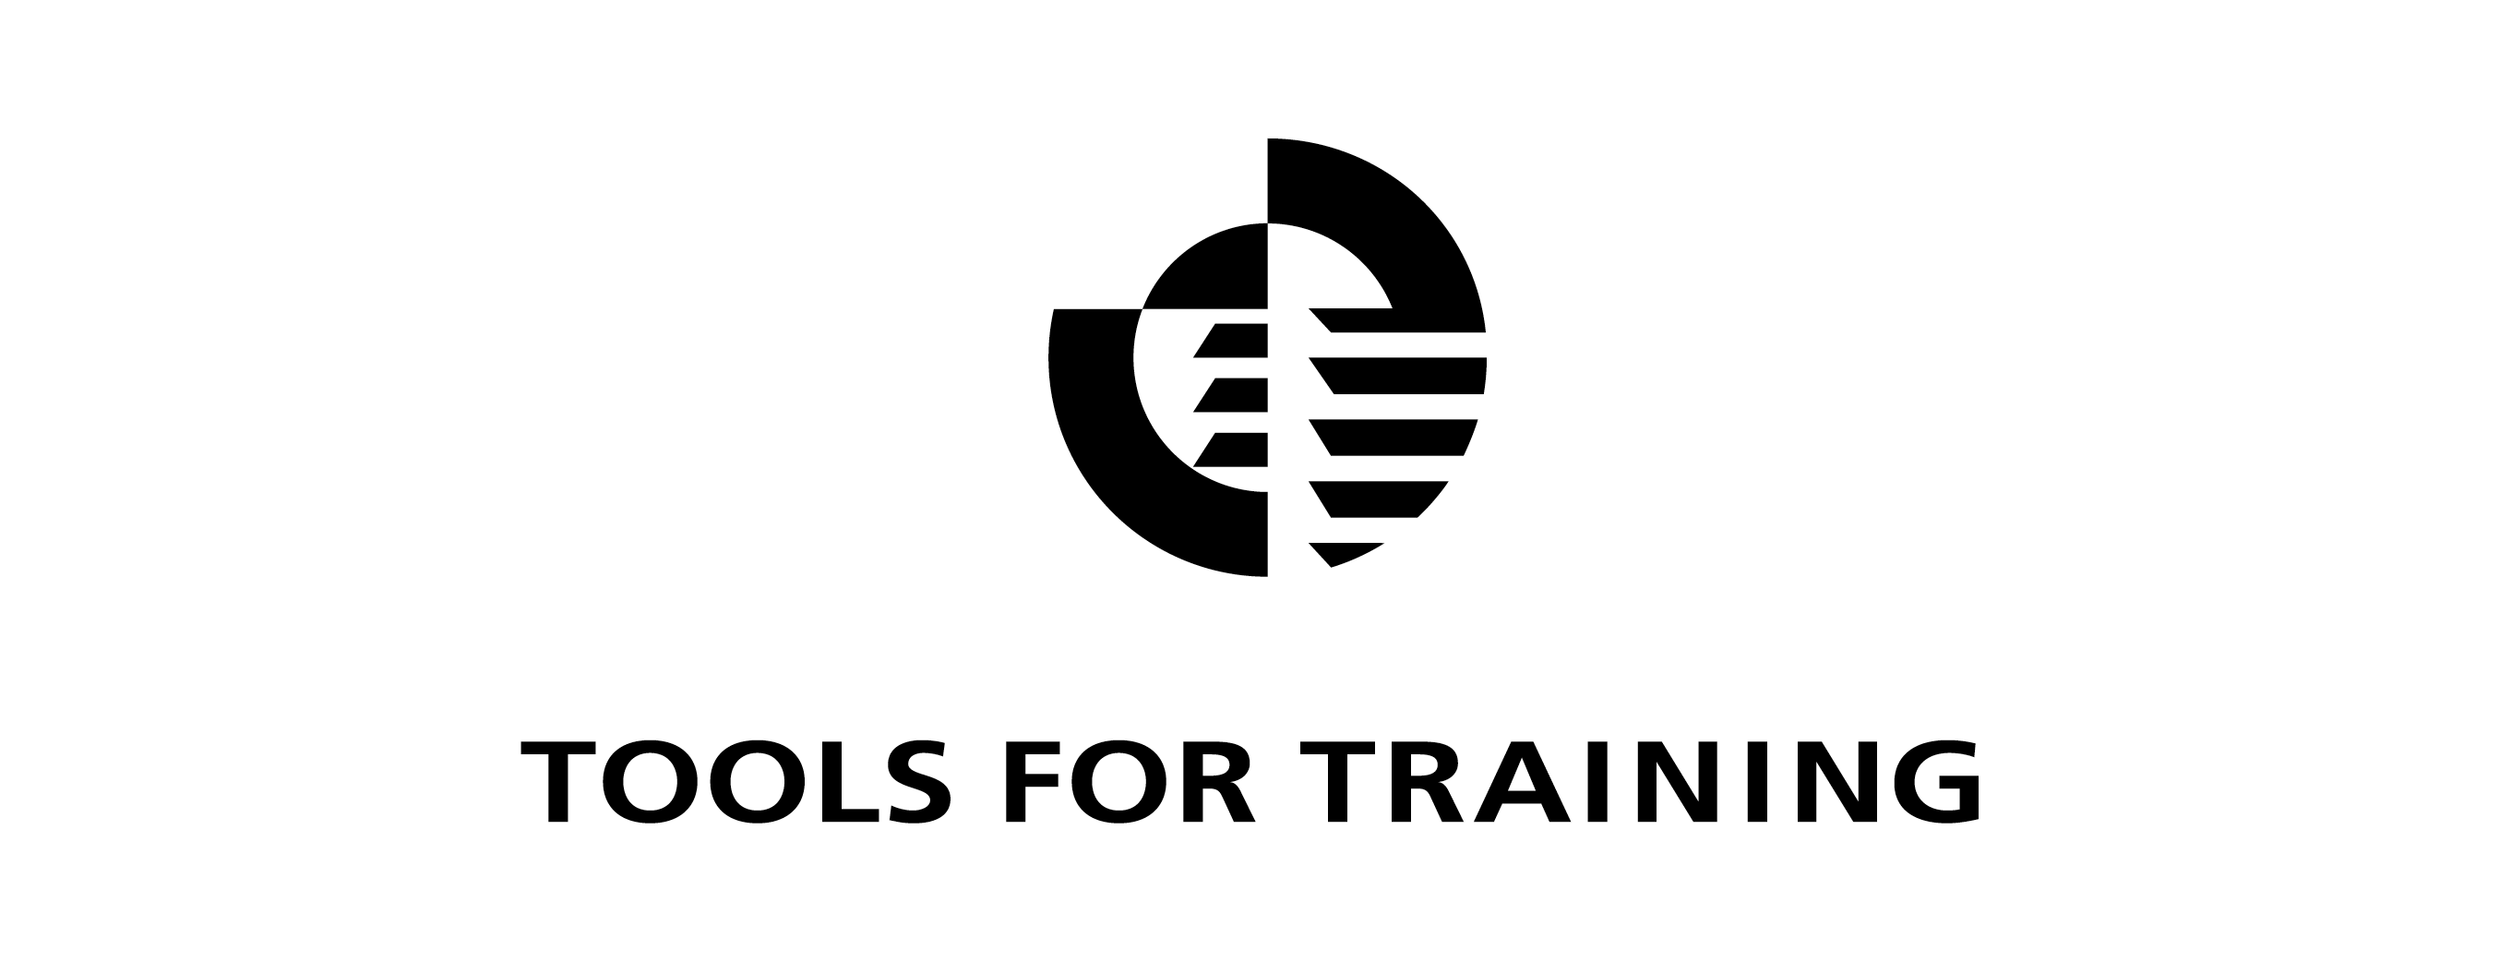 Tools for Training